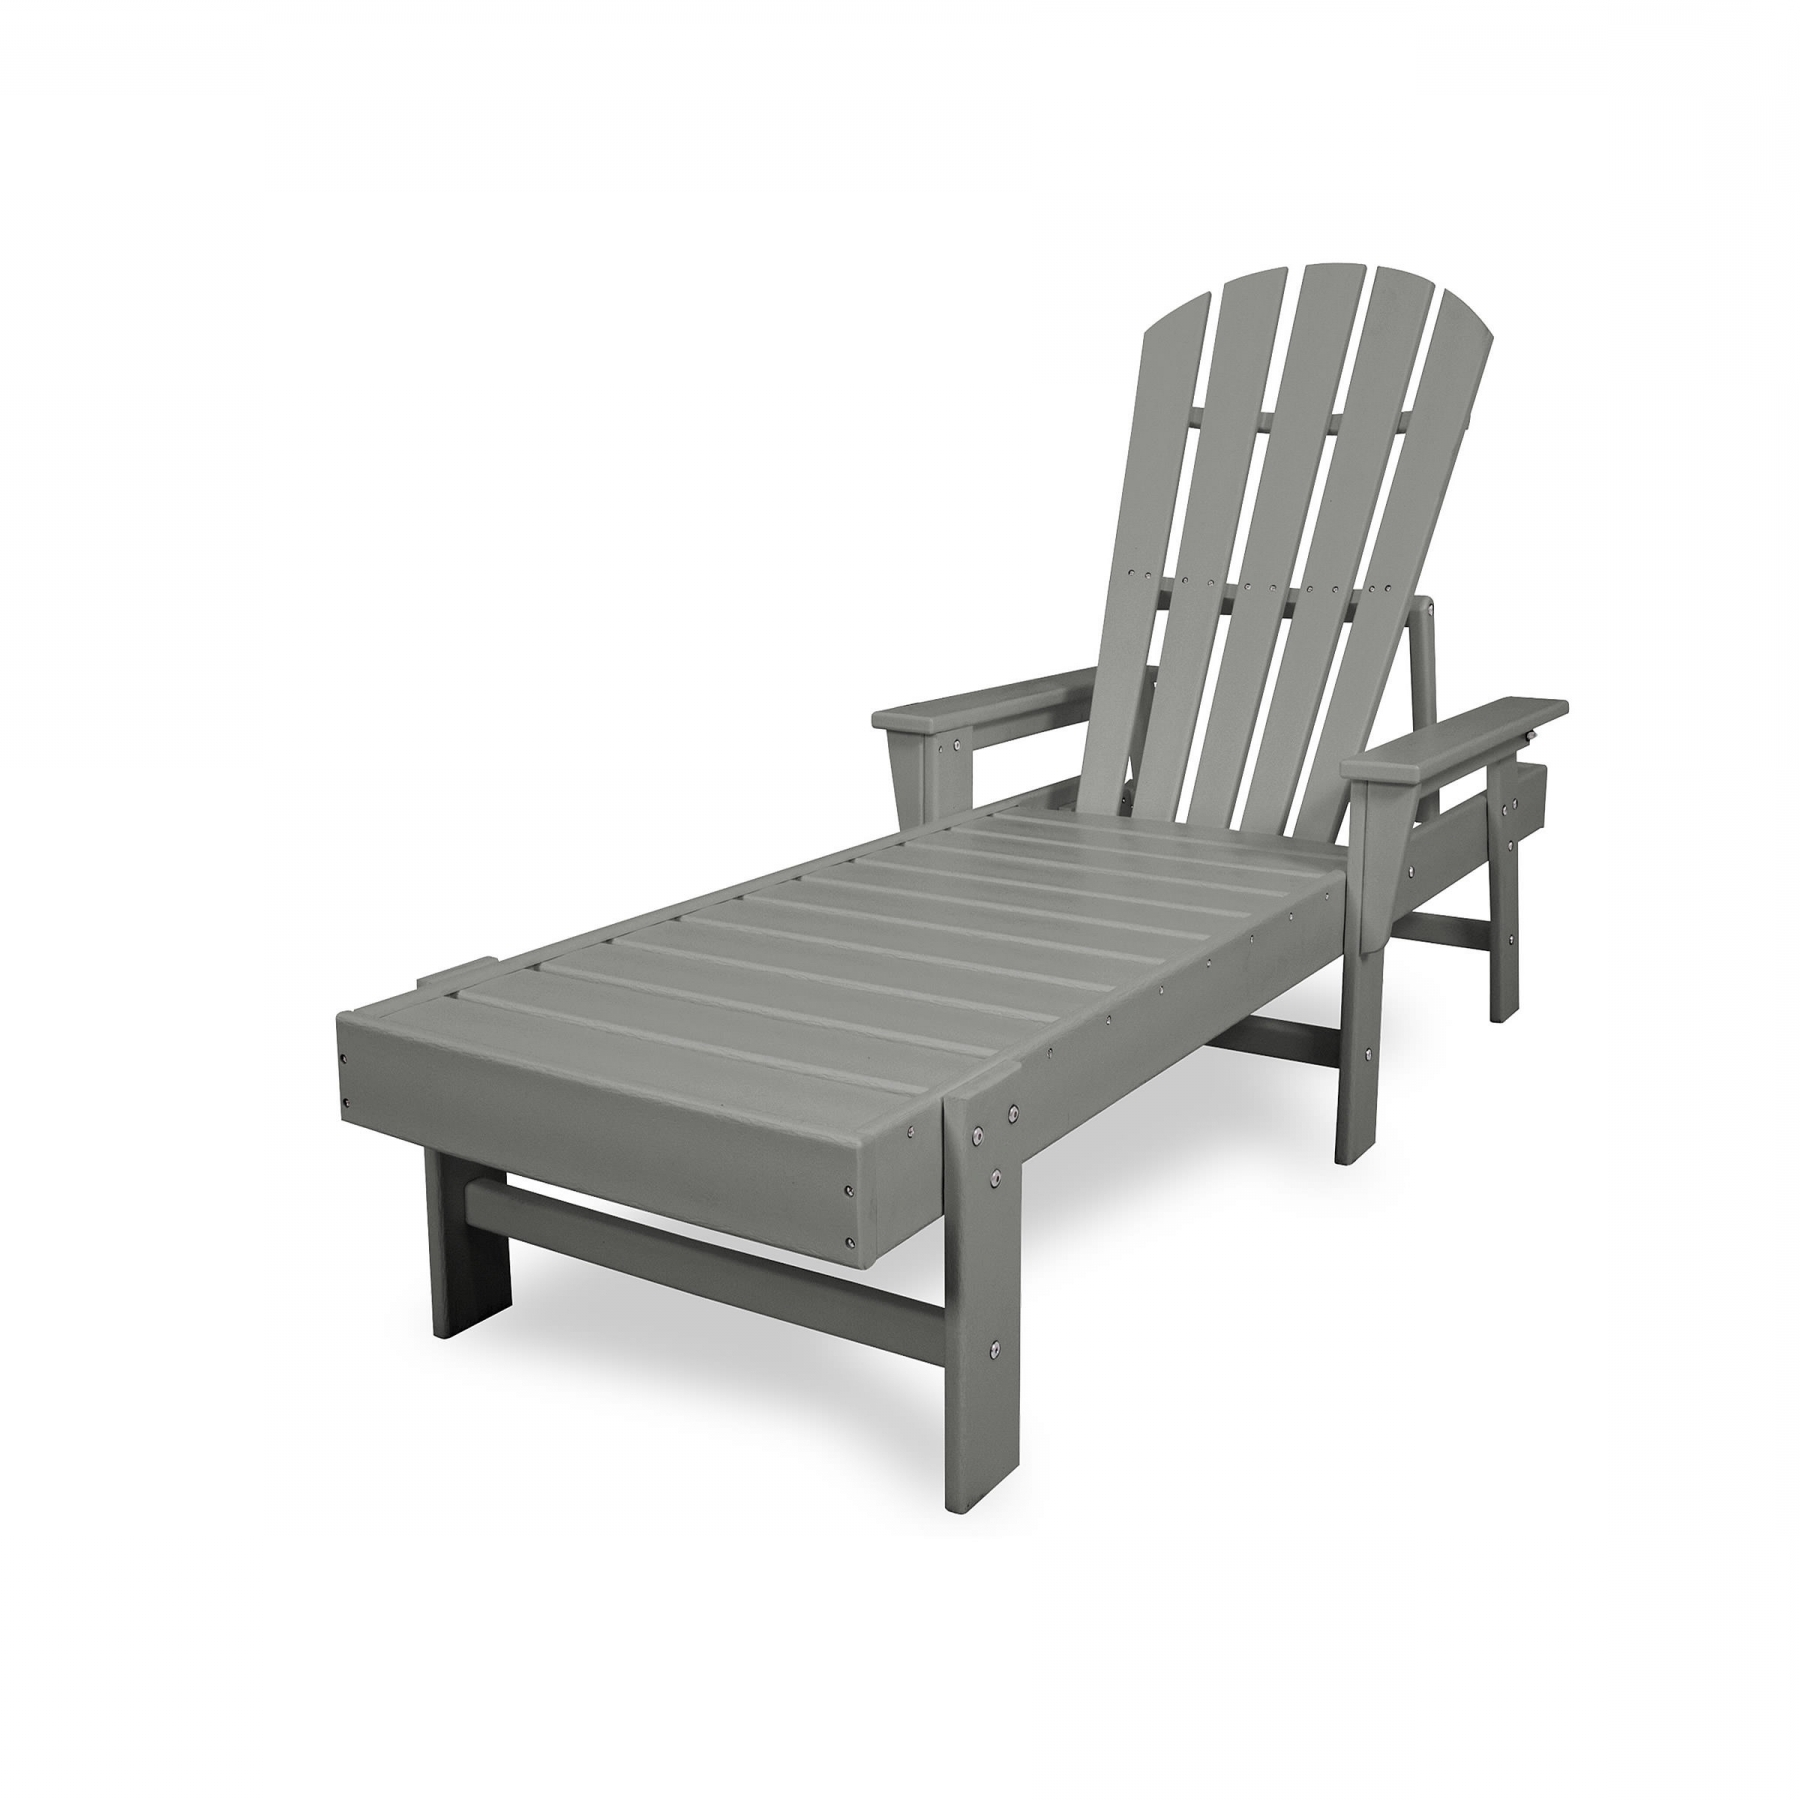 Fashionable Polywood South Beach Chaise Lounge For Beach Chaise Lounges (View 4 of 15)